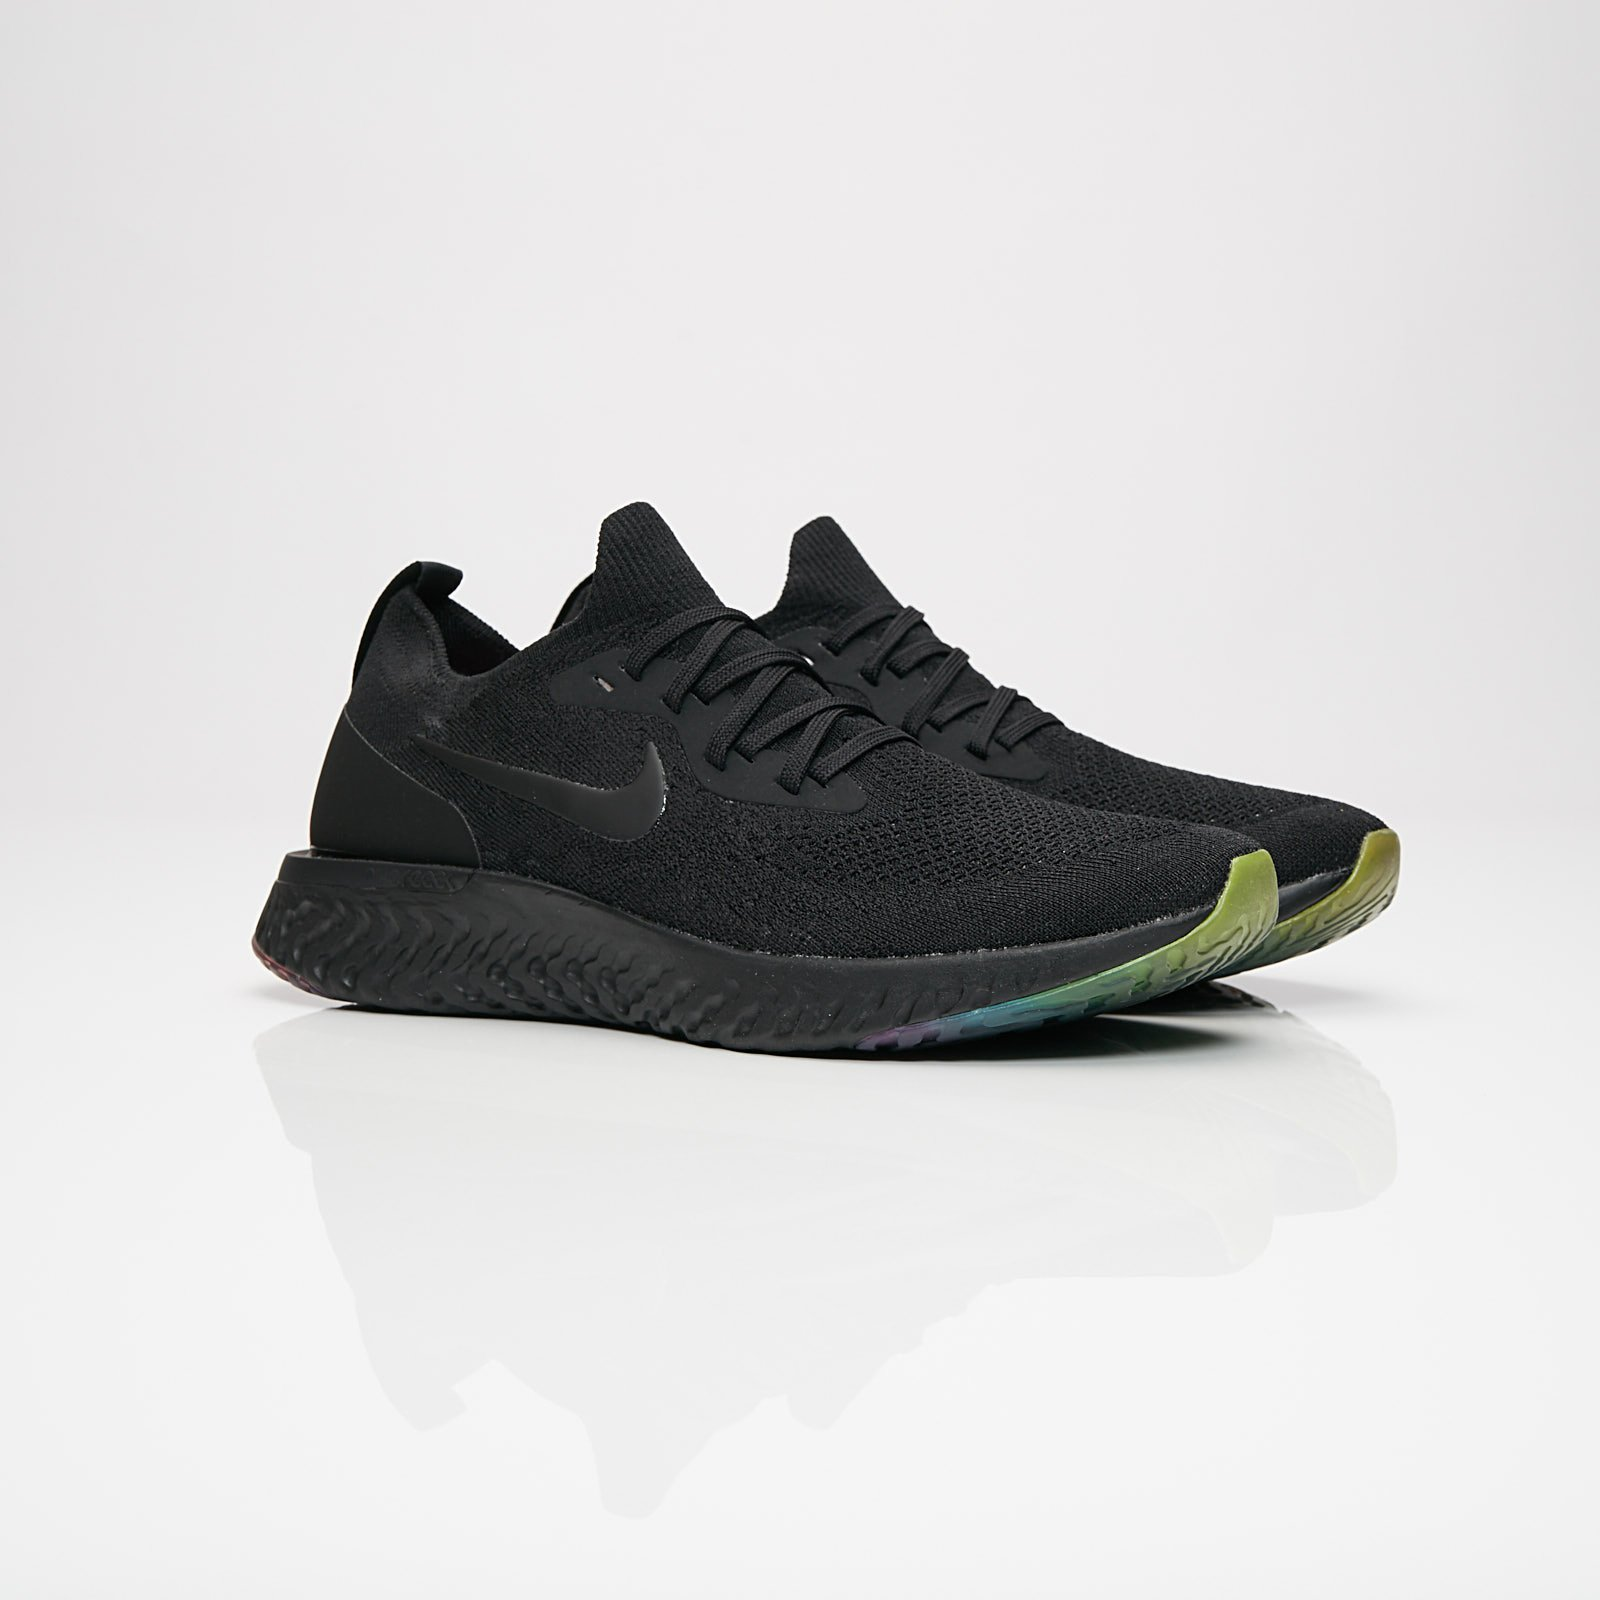 f94470251bc4 Nike Epic React Flyknit Be True - Ar3772-001 - Sneakersnstuff ...